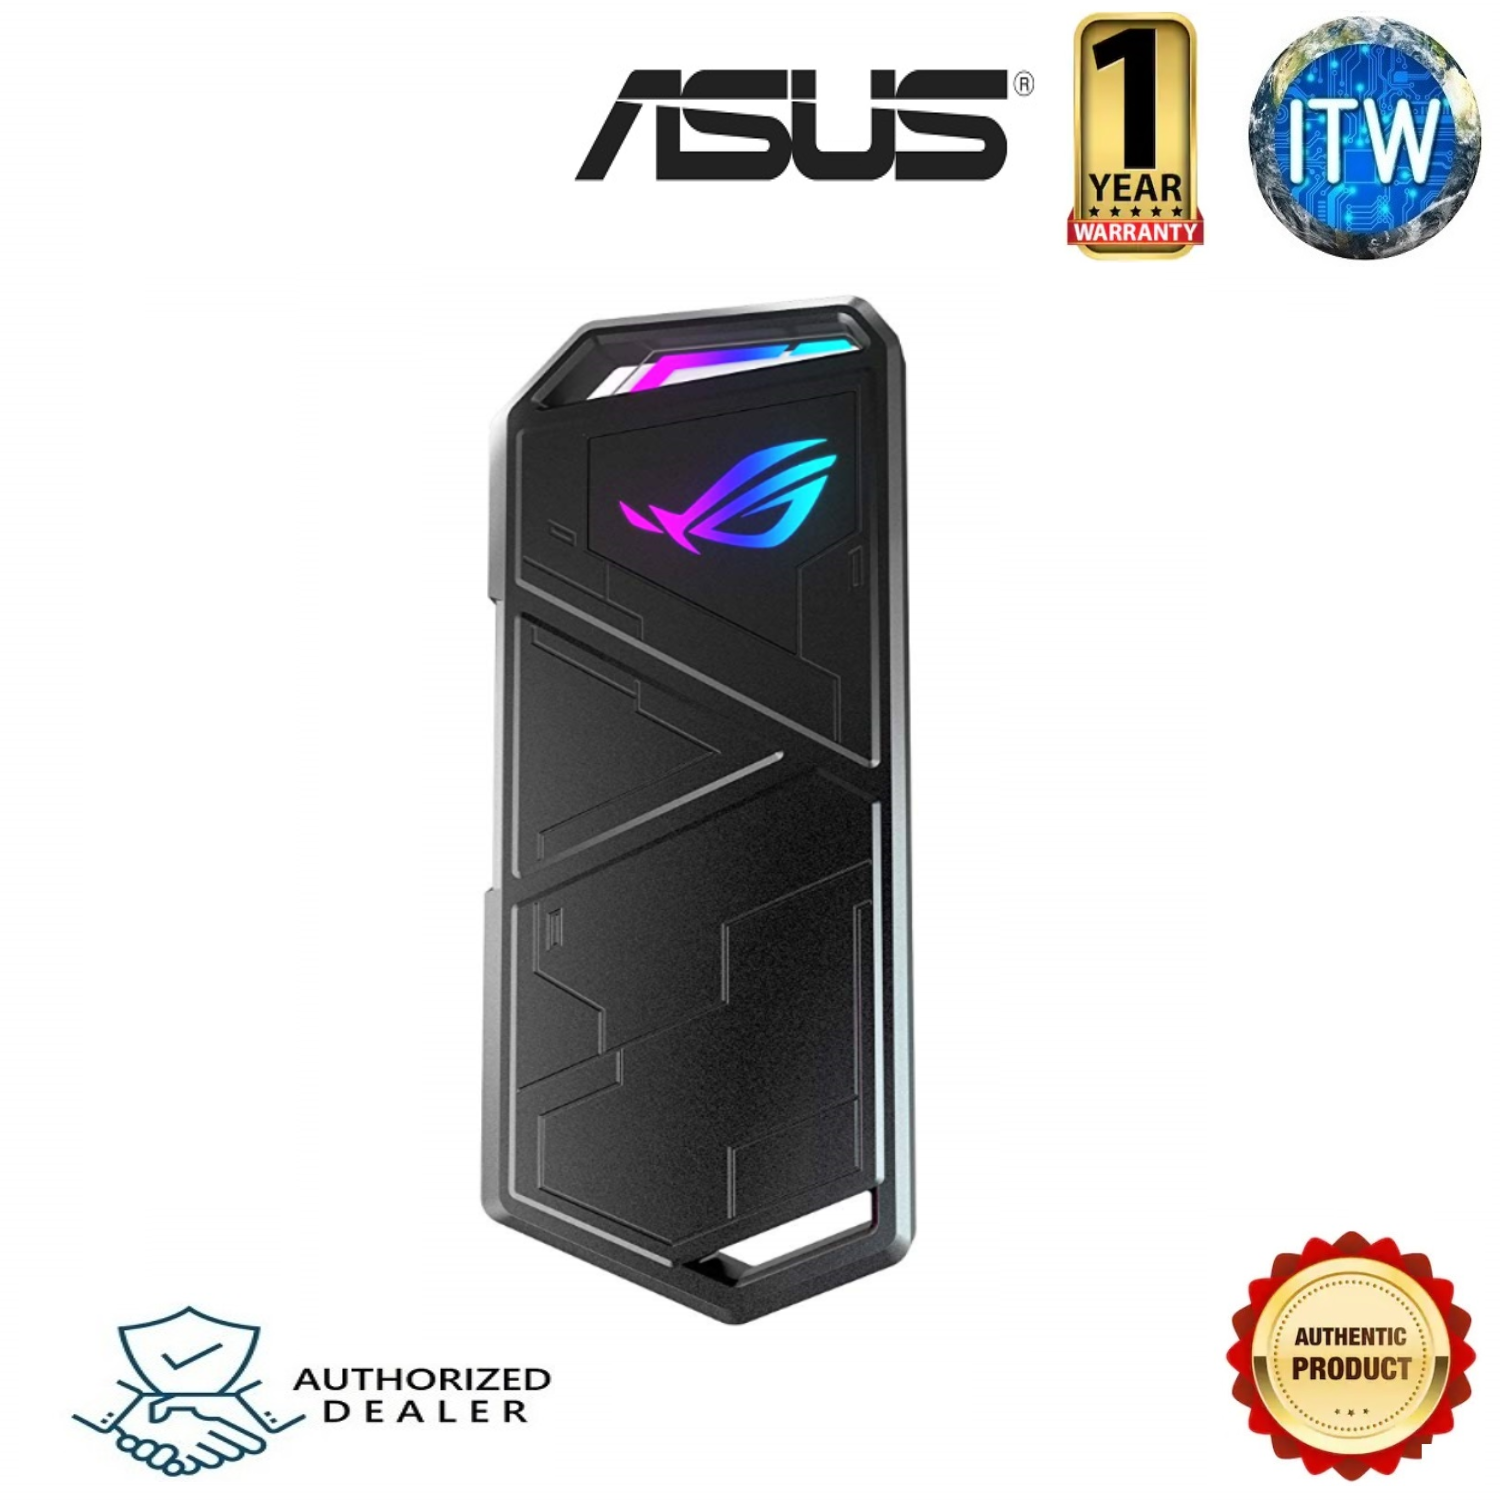 Asus ROG Strix Arion M.2 NVMe SSD ENCLOSURE USB3.2 GEN2 Type-C (10 Gbps), Dual USB-C to C and USB-C to A Cables, Screwdriver-Free, Thermal Pads Included, Fits PCIe 2280/2260/2242/2230 M key/B+M Key